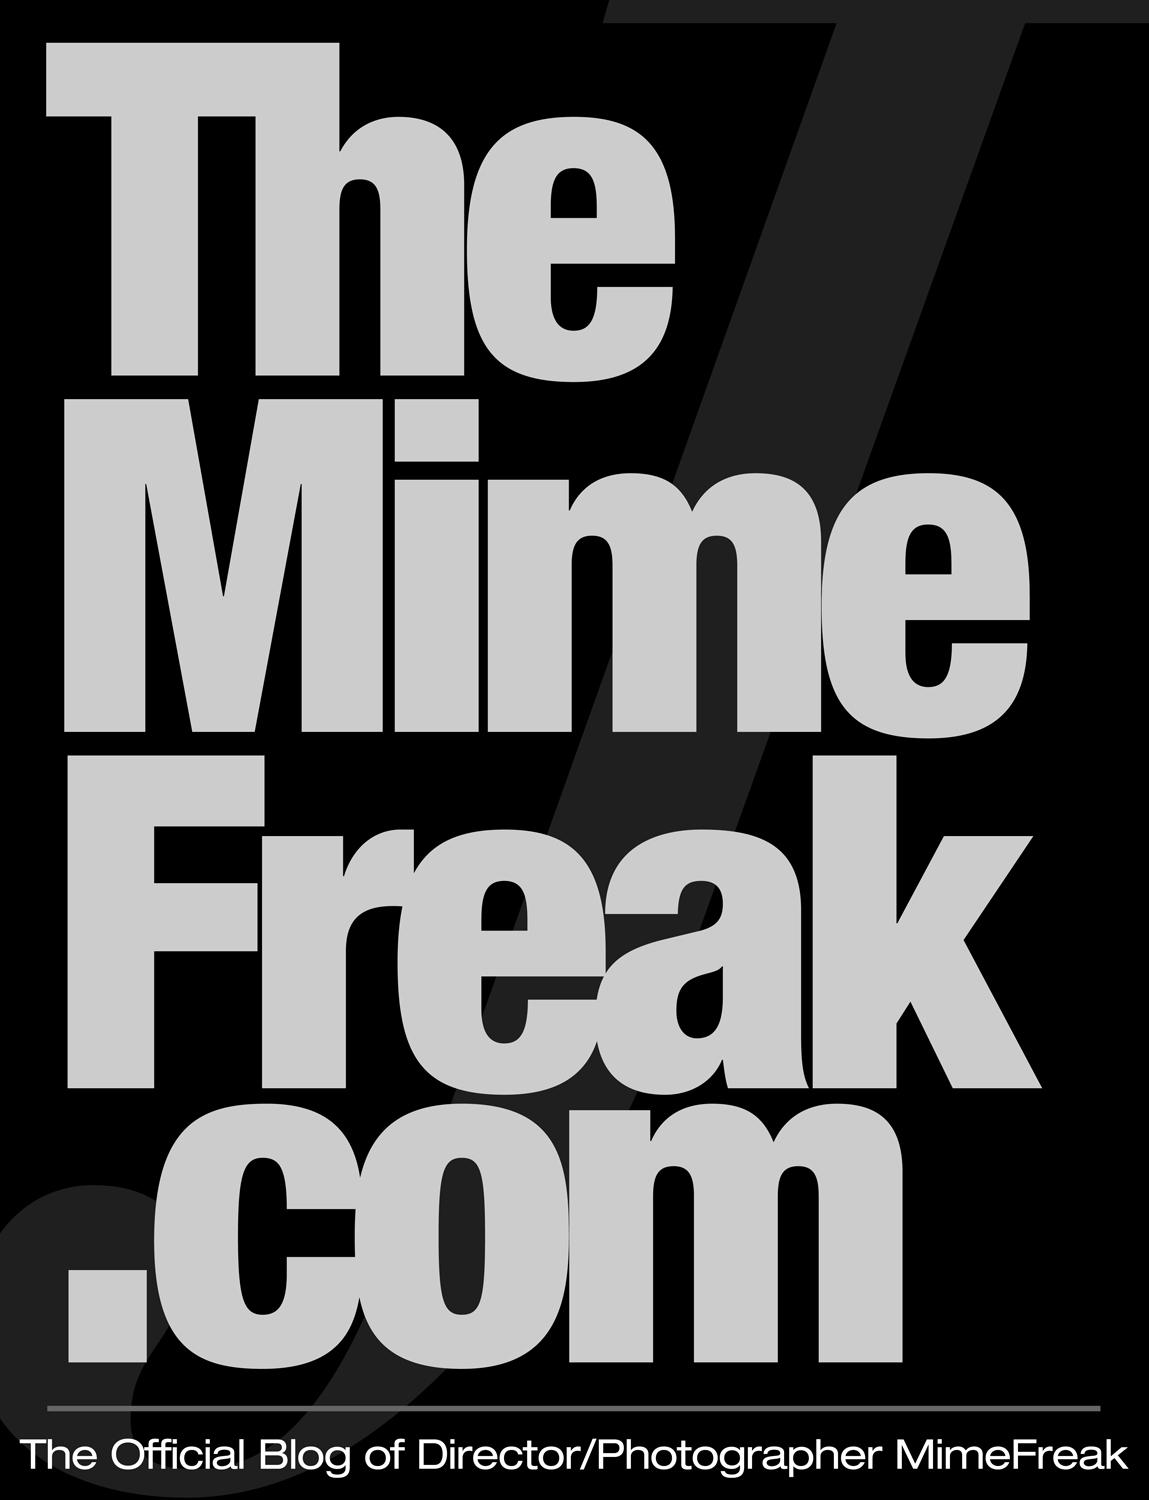 themimefreak